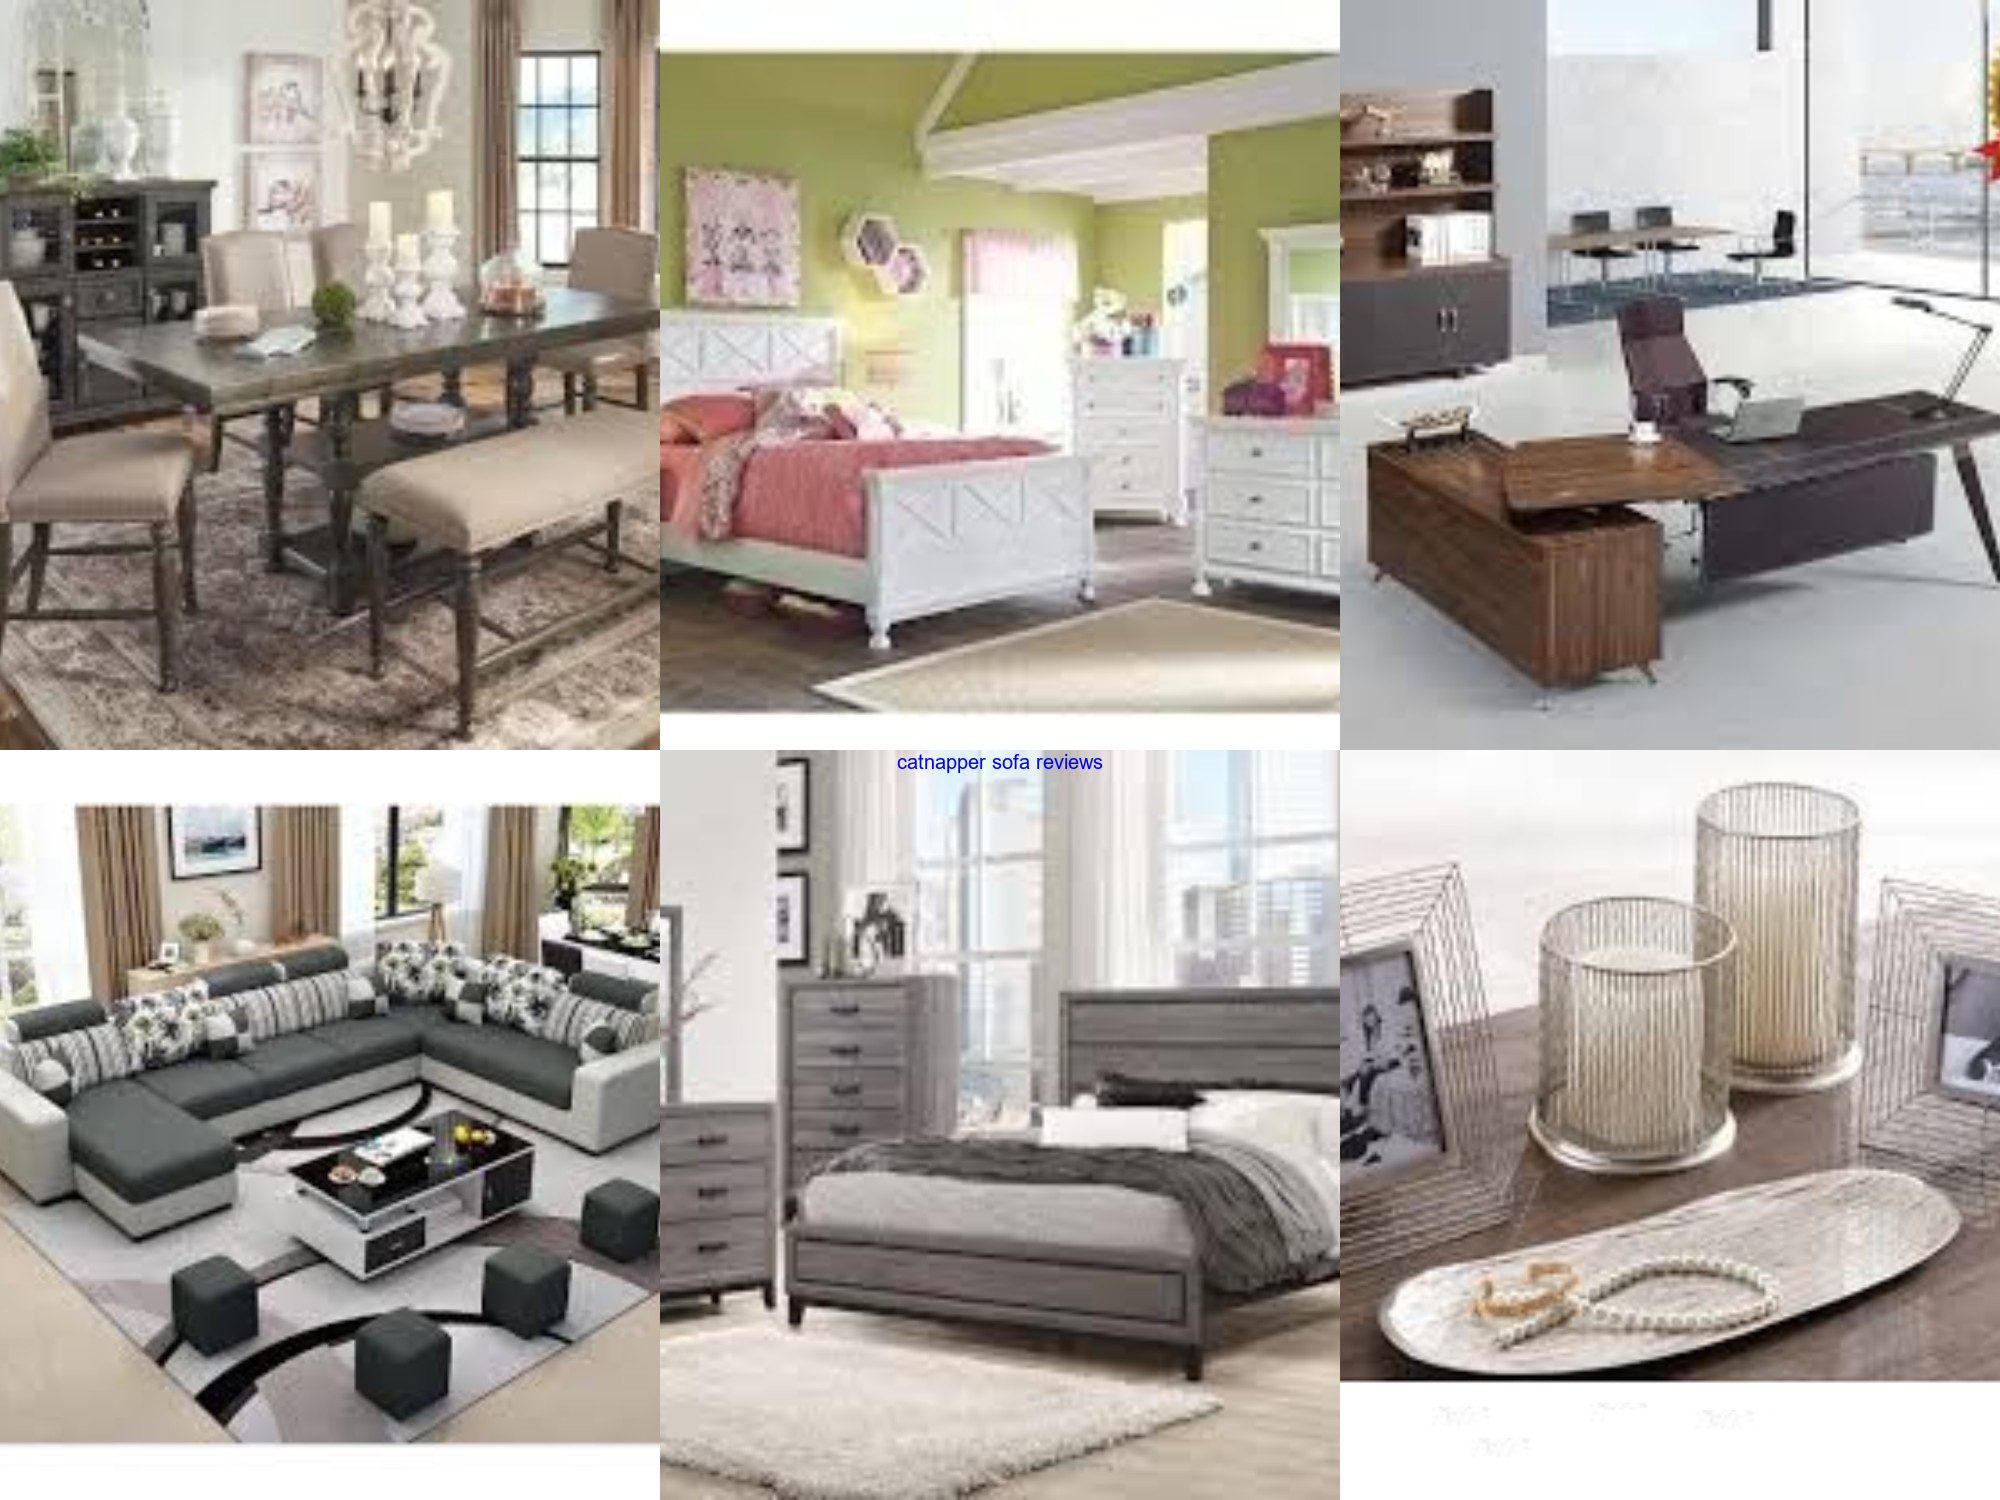 Catnapper Sofa Reviews I Suggest You To Visit This Internet Site Where You Can Find Deals For Your Furniture Keywords Furnit In 2020 Value City Furniture